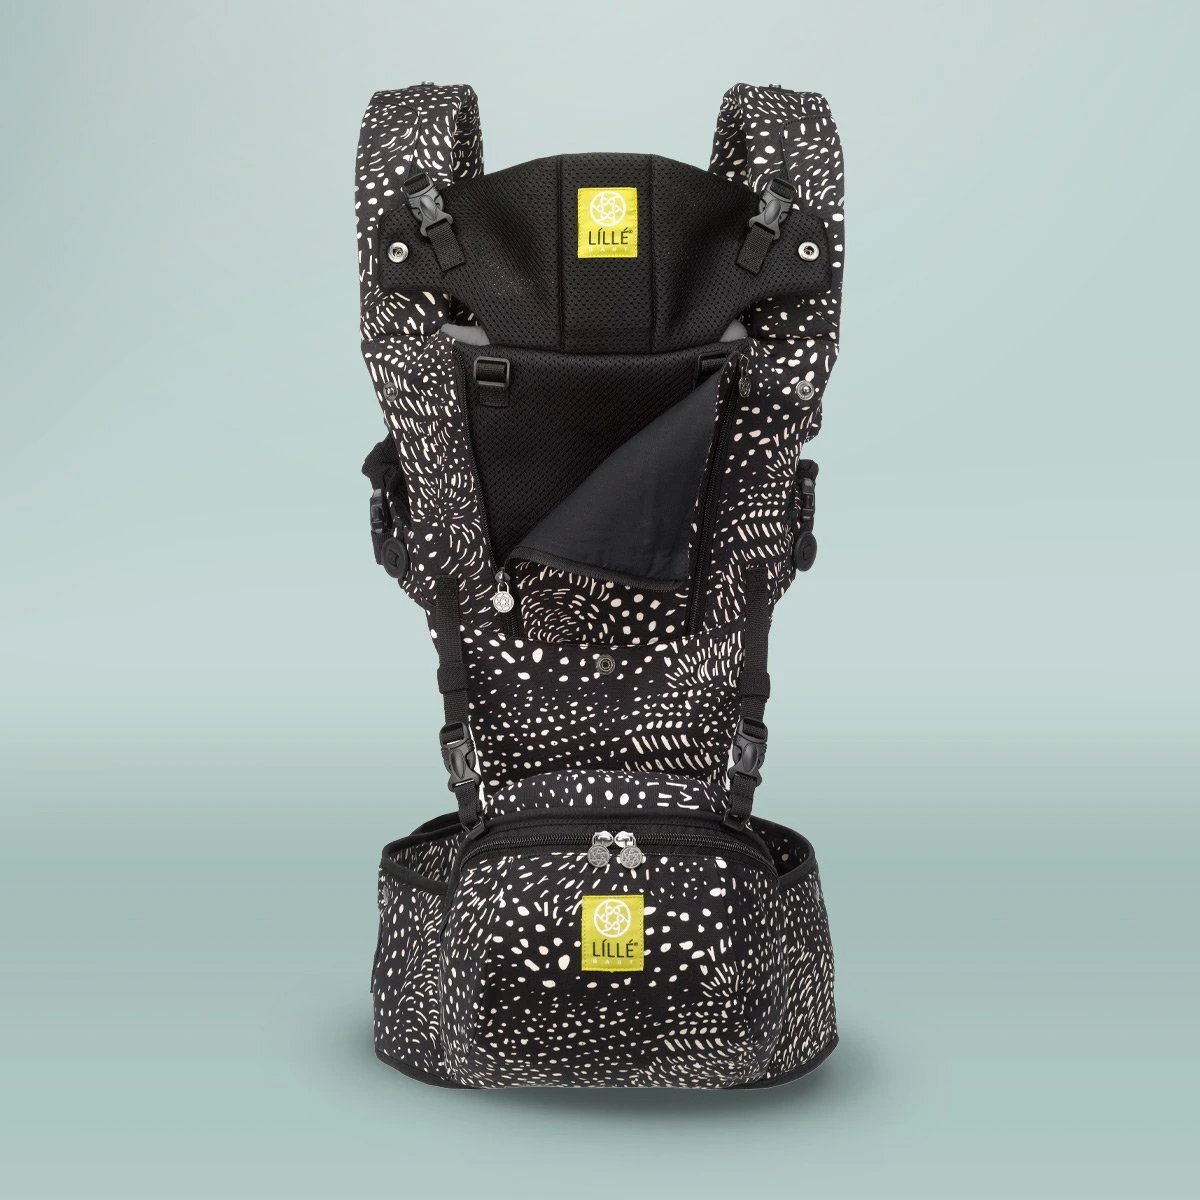 LILLEbaby SeatMe All Seasons Carrier in Plume